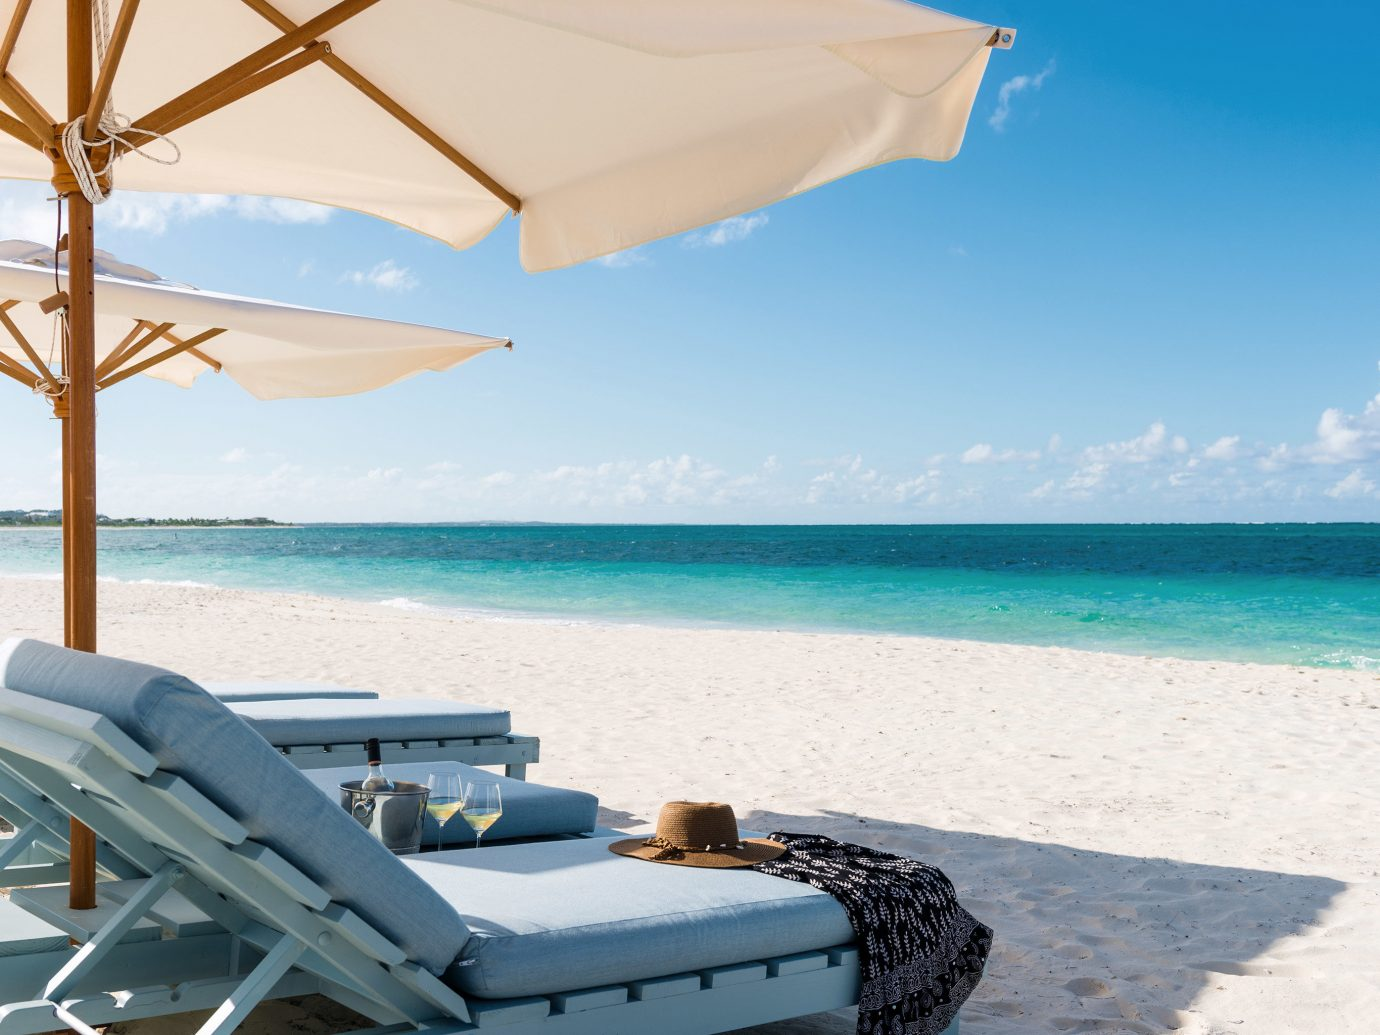 Beach Beachfront Boutique Grounds Luxury Resort Trip Ideas sky water outdoor chair Sea caribbean vacation Ocean Coast swimming pool bay shore